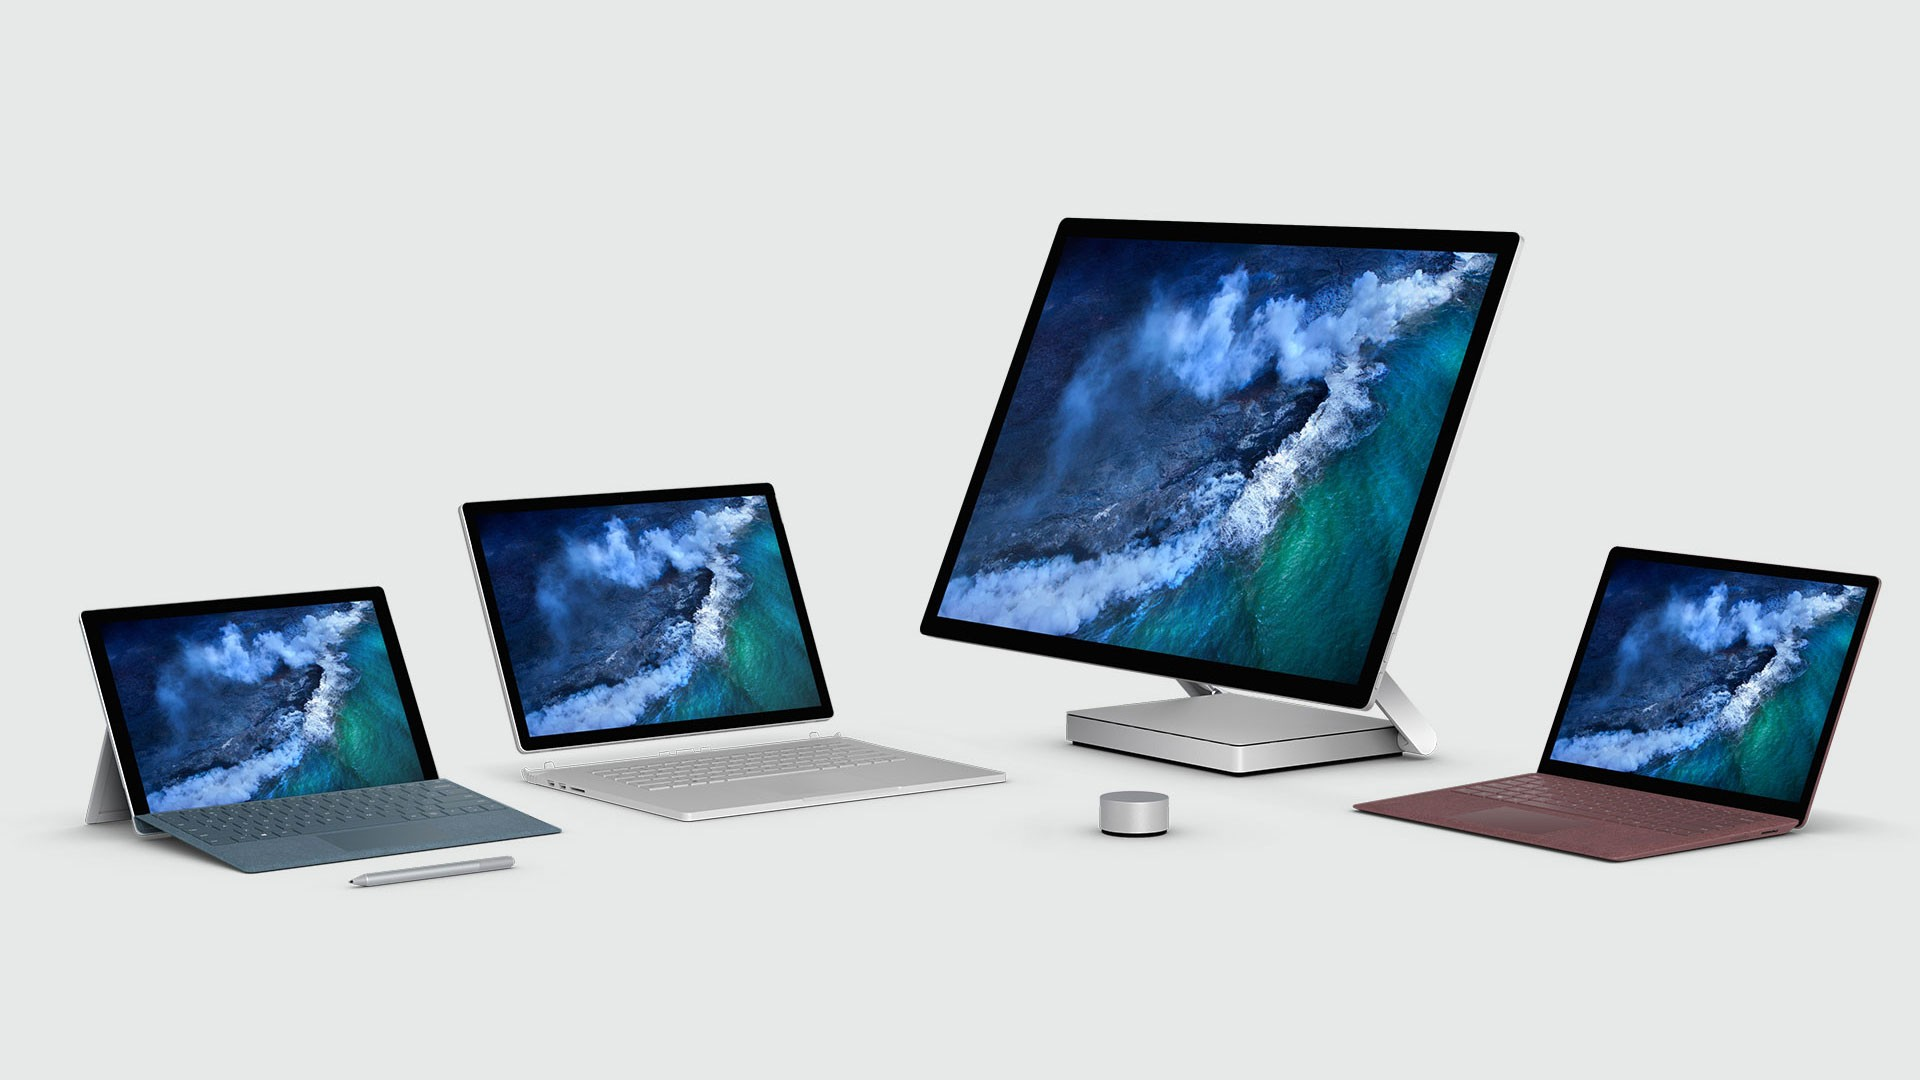 Microsoft announces Surface event on October 2: Foldable dual-screen device expected